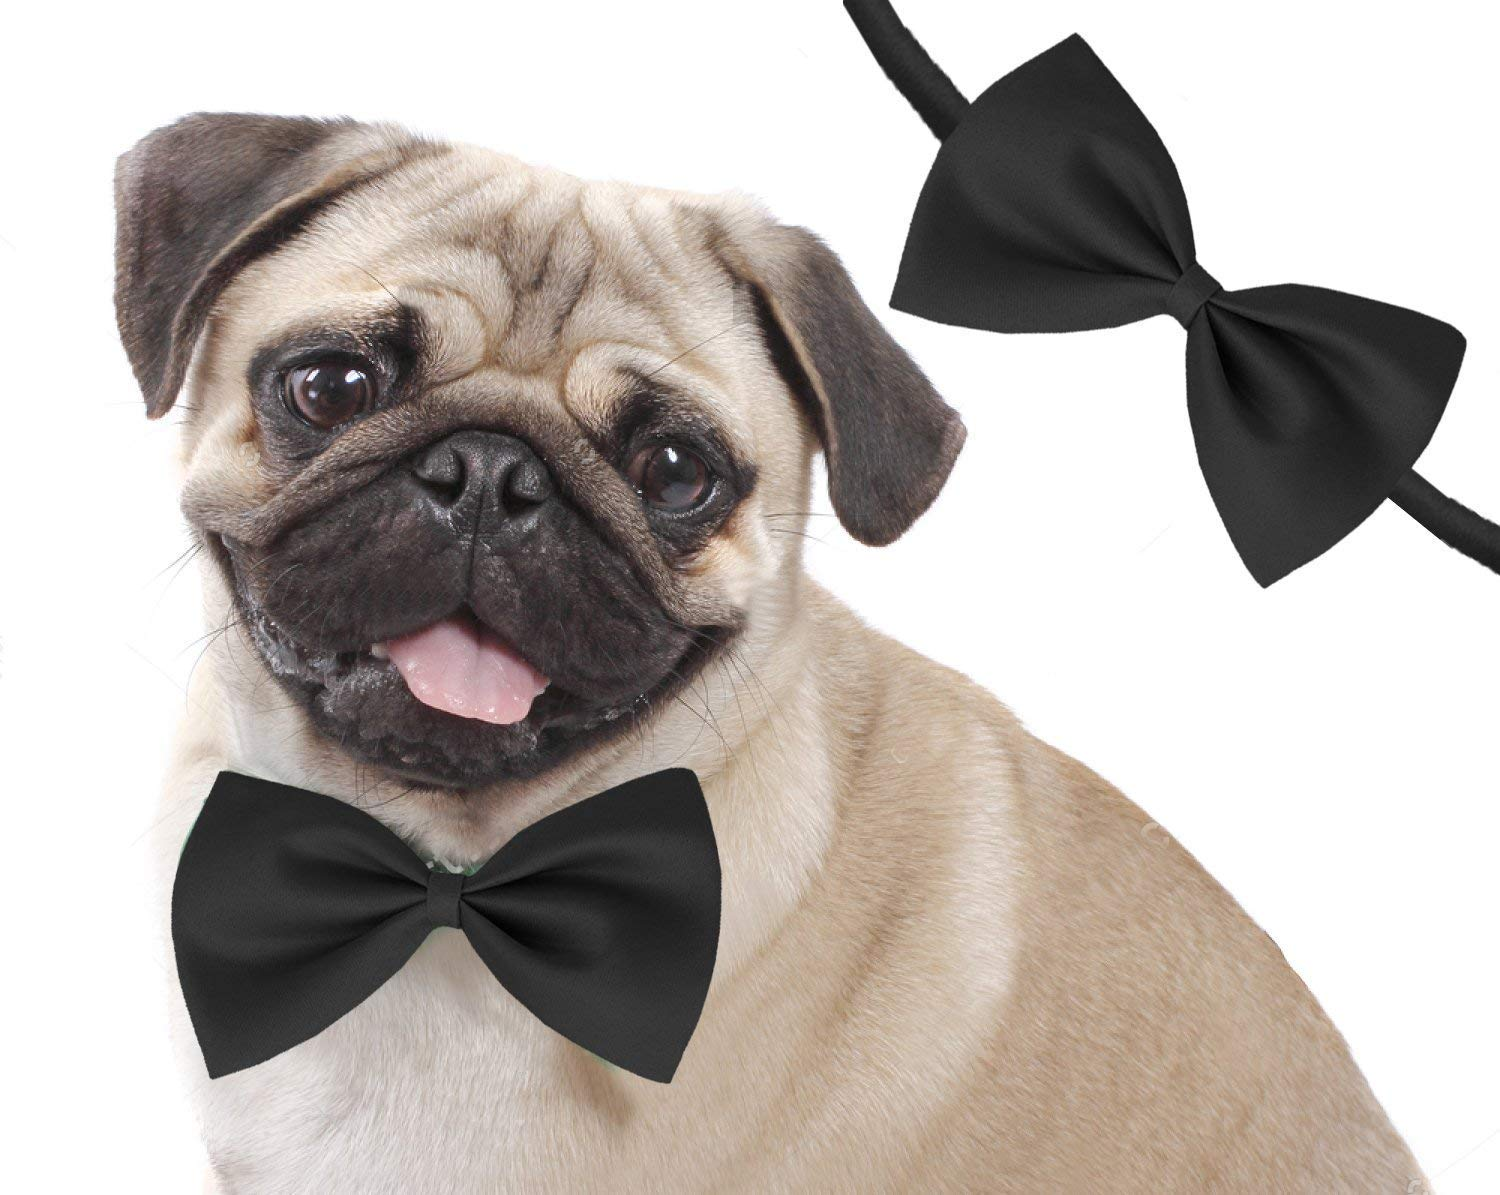 da916146b0e4 Buy Pet Dog and Cats Bow Tie Online at Low Prices in India - Amazon.in